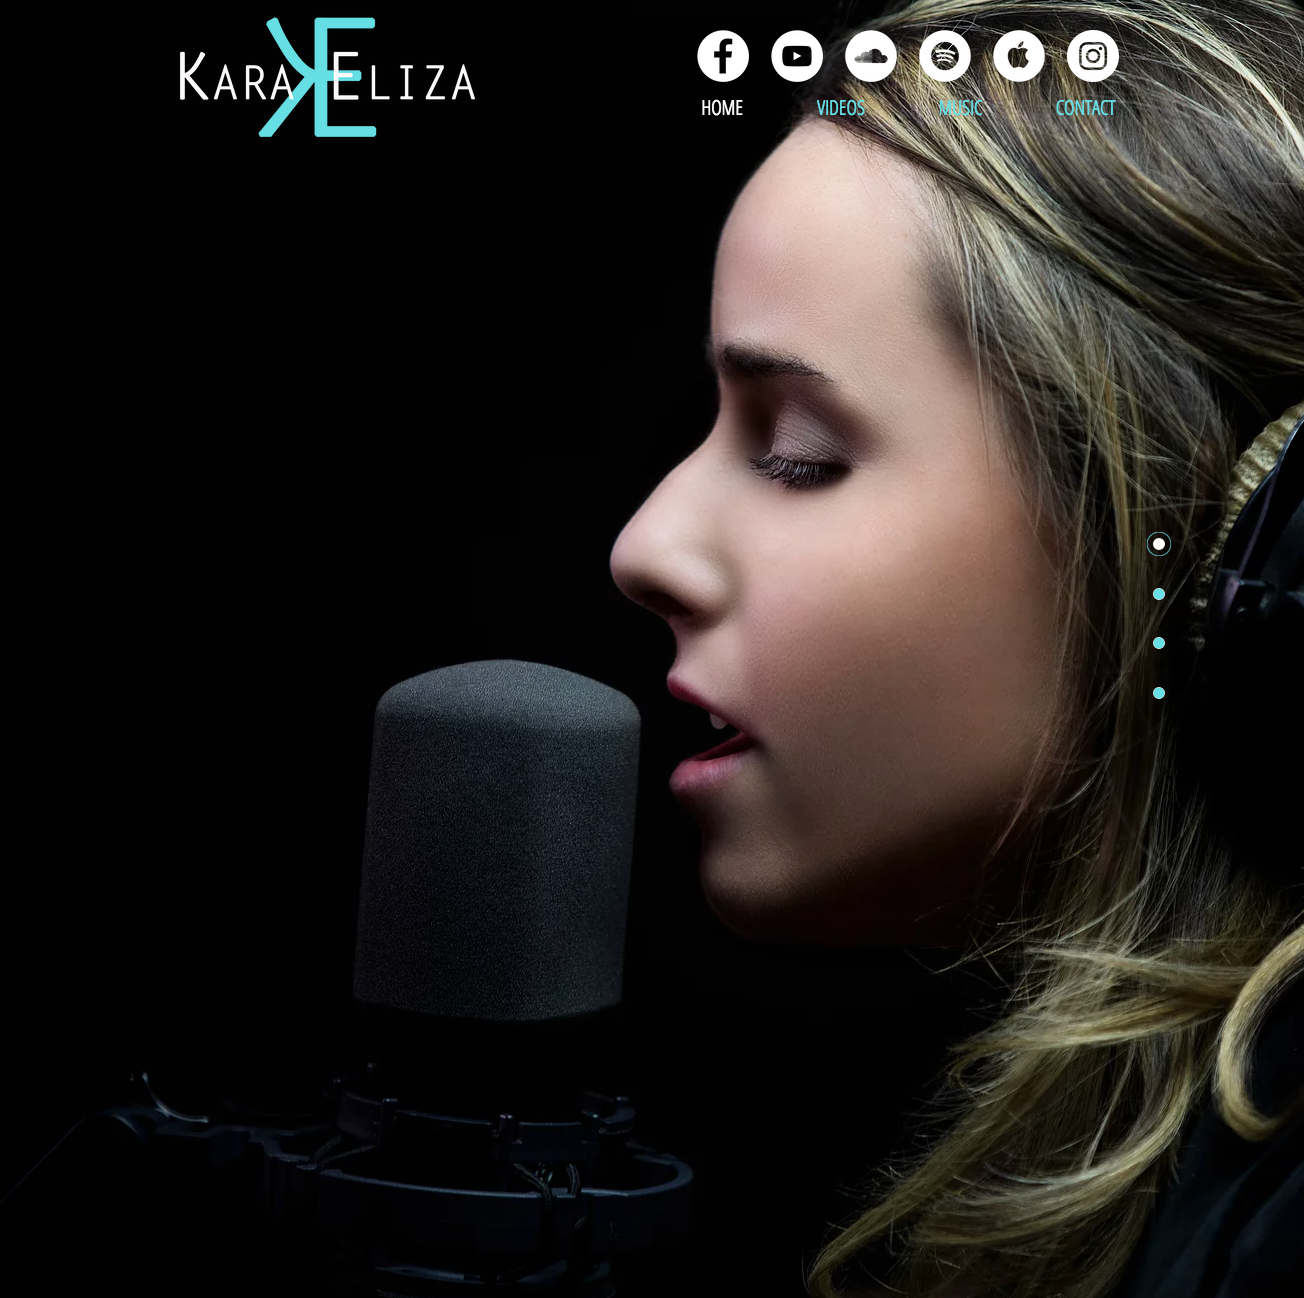 Kara Eliza Music Official Website